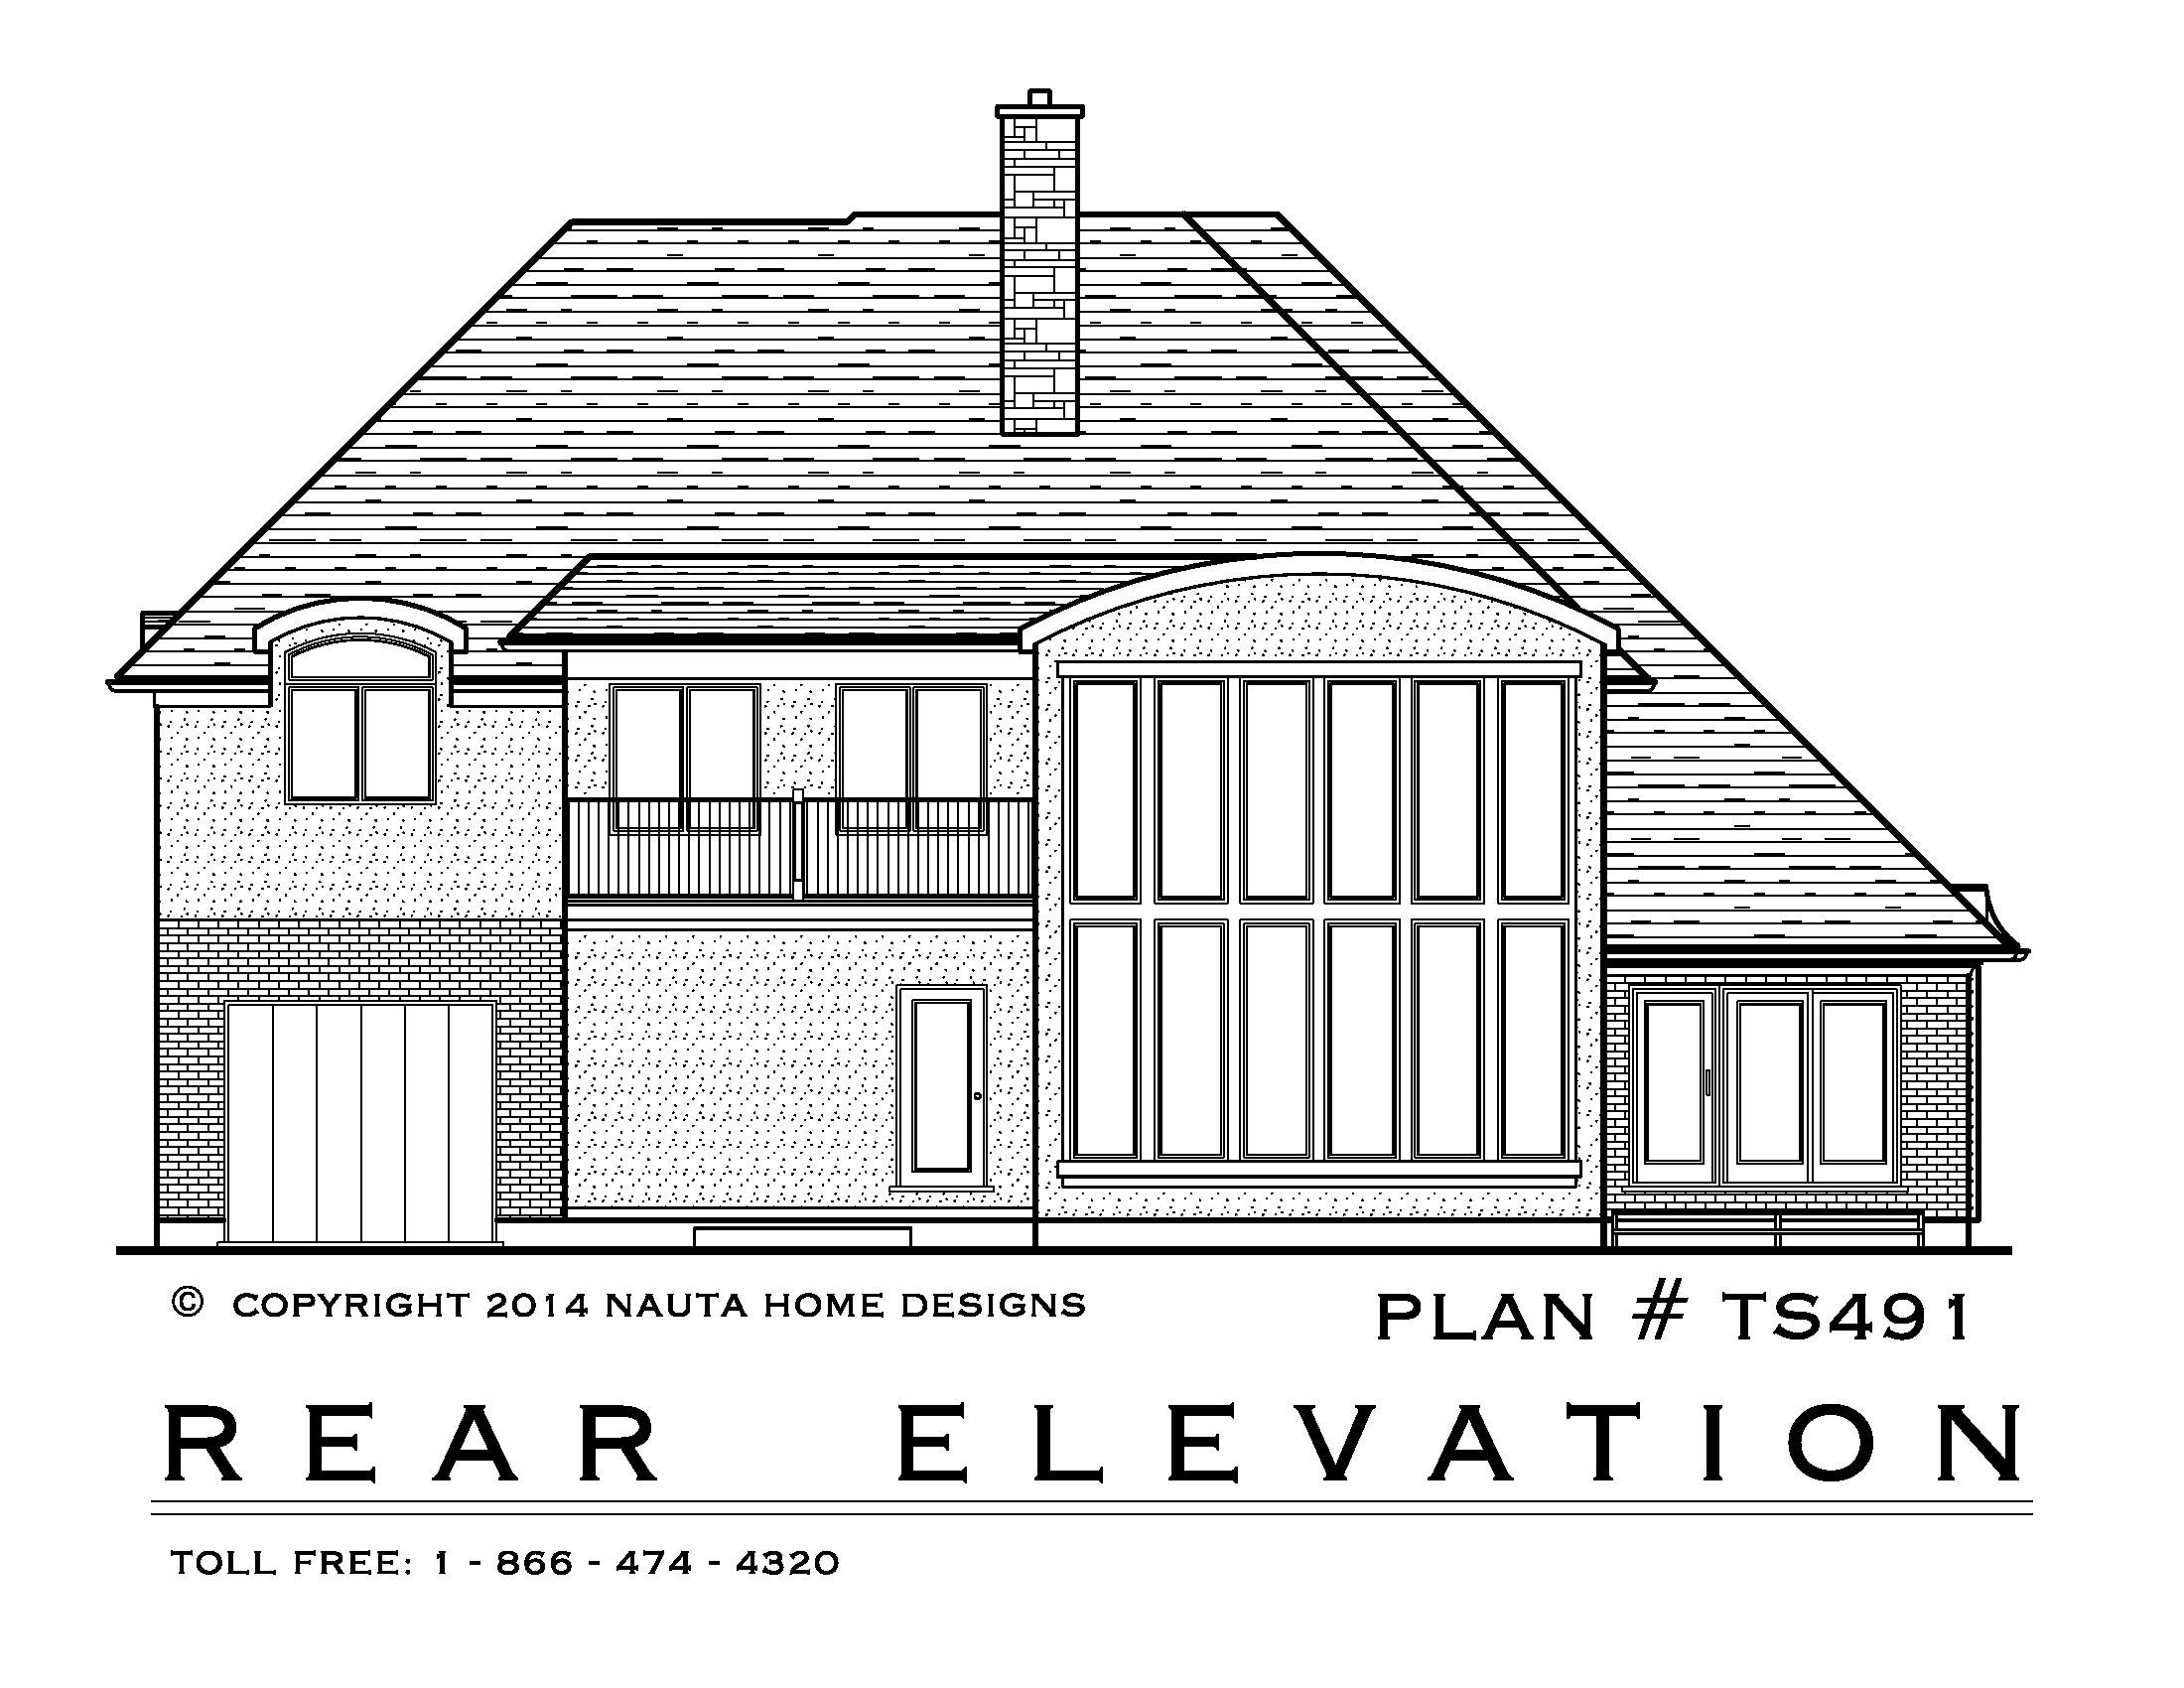 3 Bedroom Two Storey House Plan Ts491